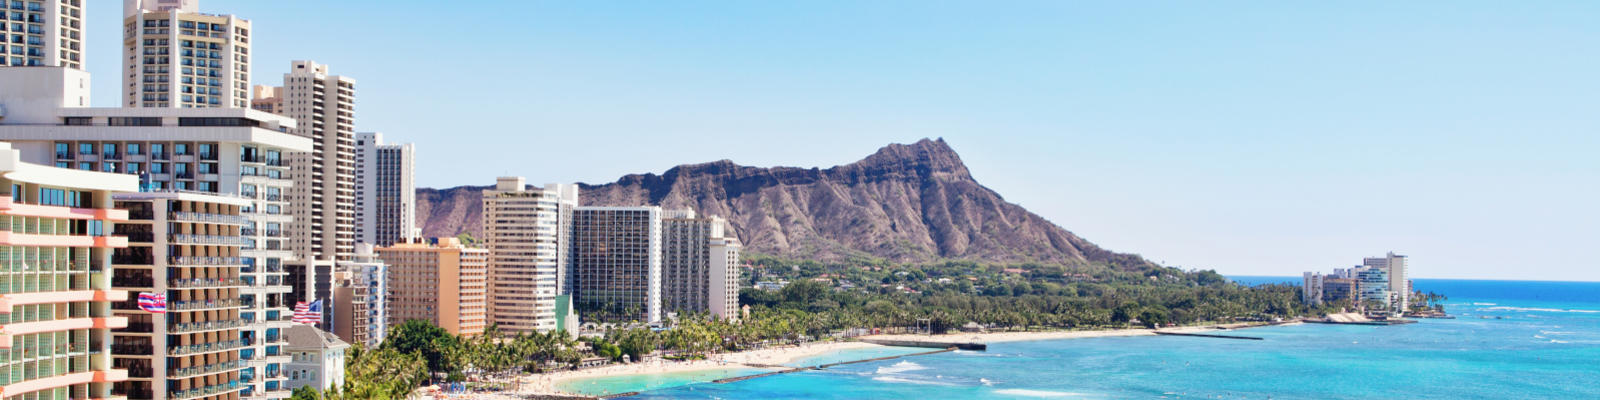 Waikiki Beach with Diamond head in the background